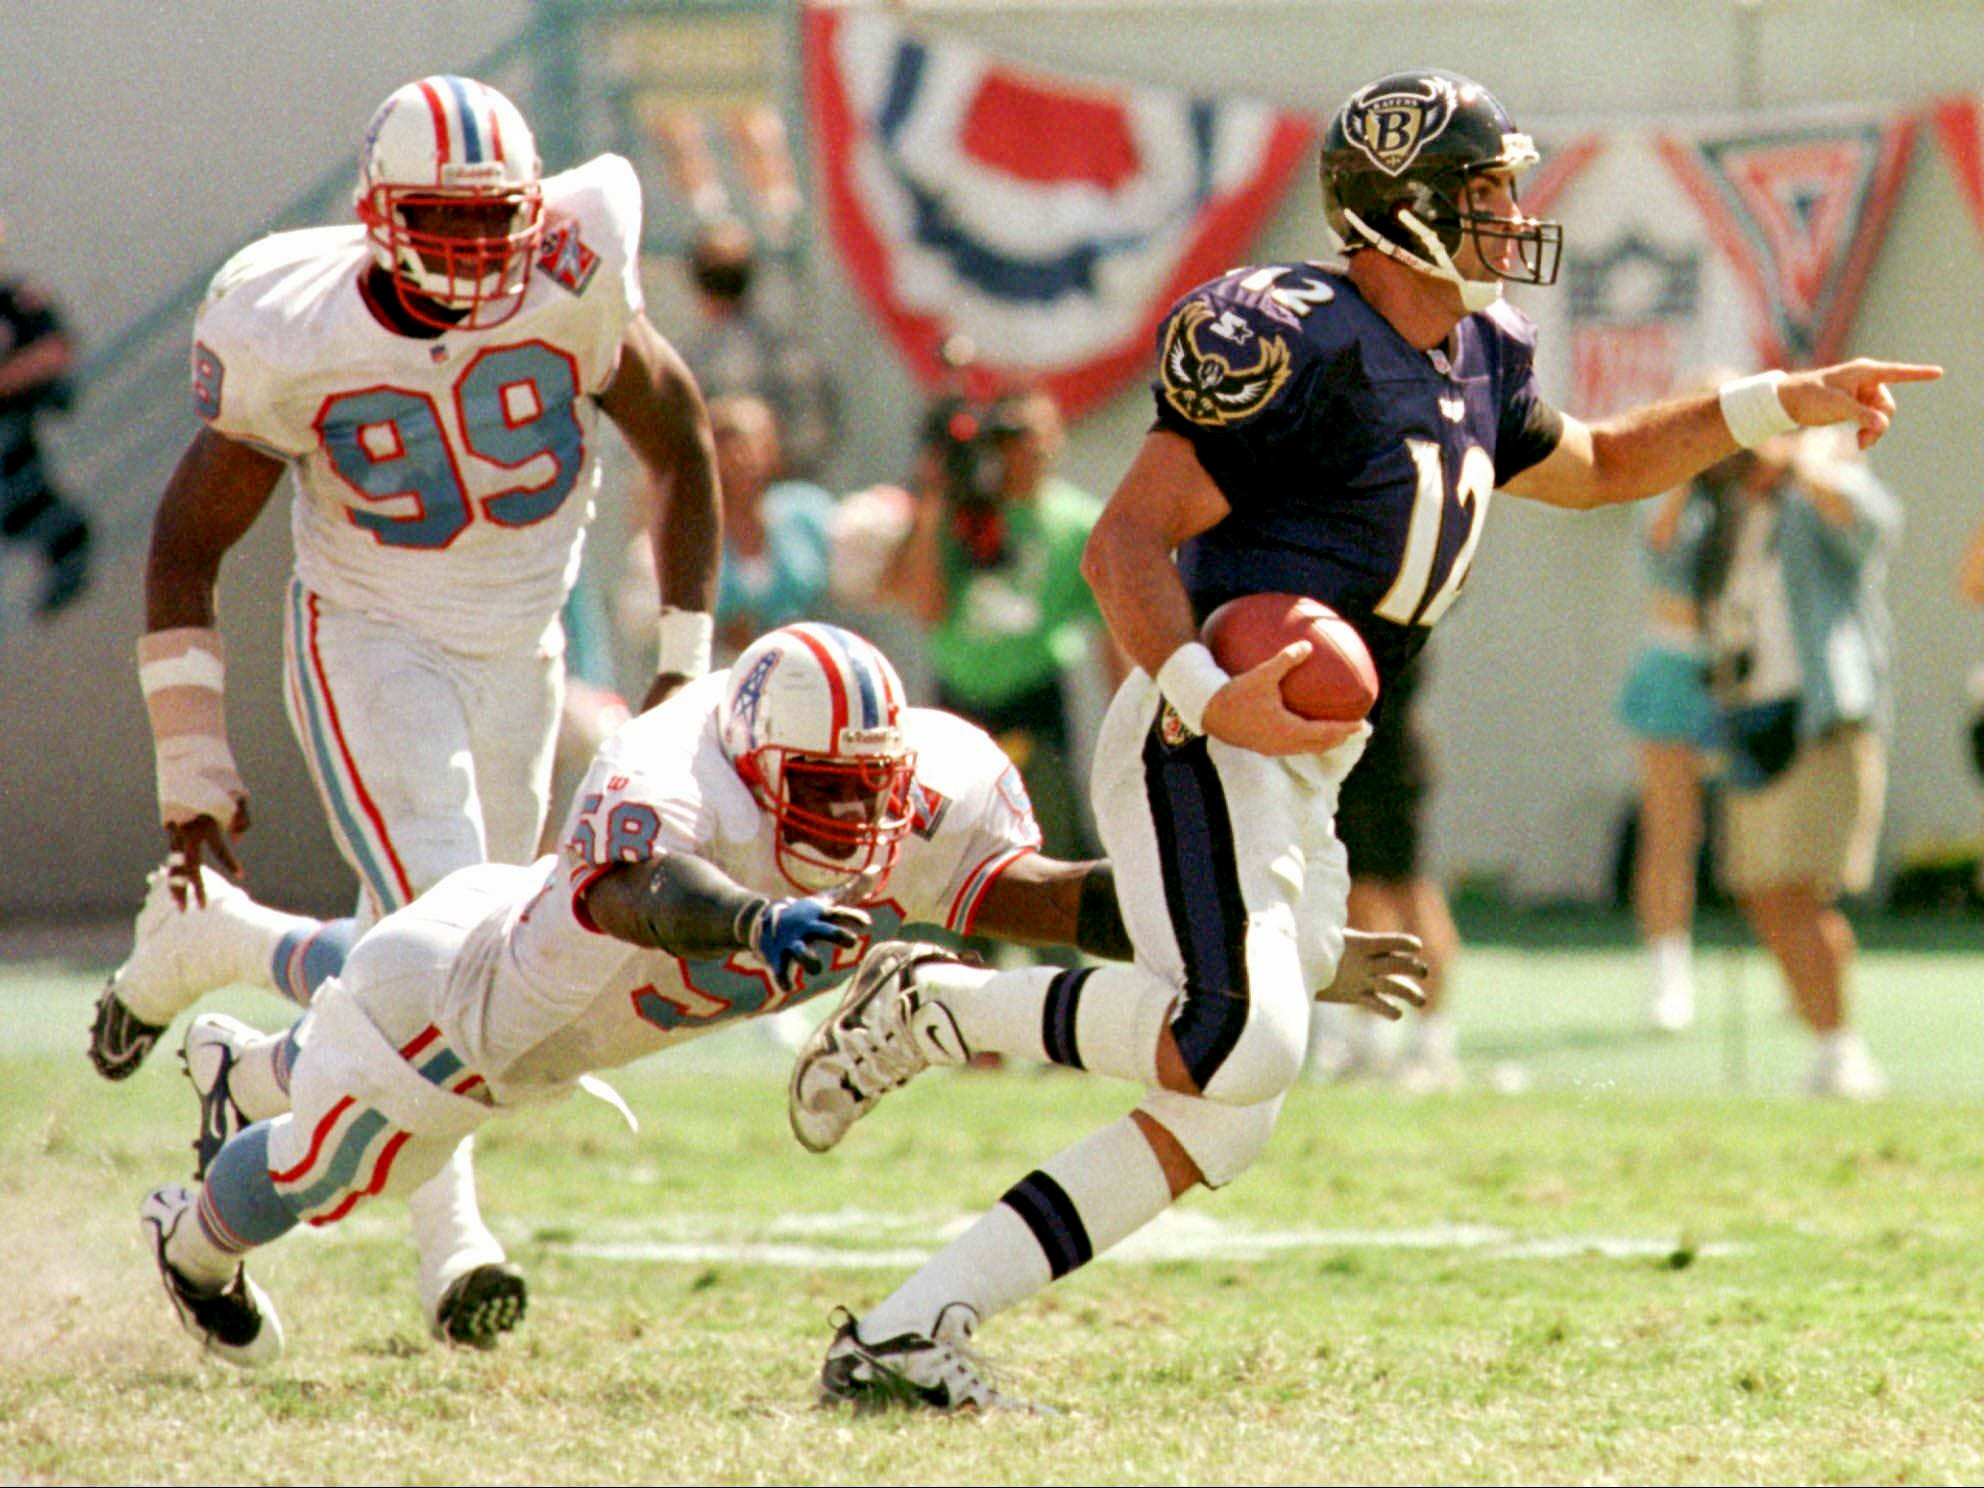 Baltimore Ravens quarterback Vinny Testaverde (12) signals to a teammate before being brought down by the Tennessee Oilers defender Joe Bowden (58) during the Ravens' 36-10 win Sept. 21, 1997 in Memphis. Testaverde threw for 318 yards and three touchdowns. At left is Kenny Holmes (99) of the Oilers.